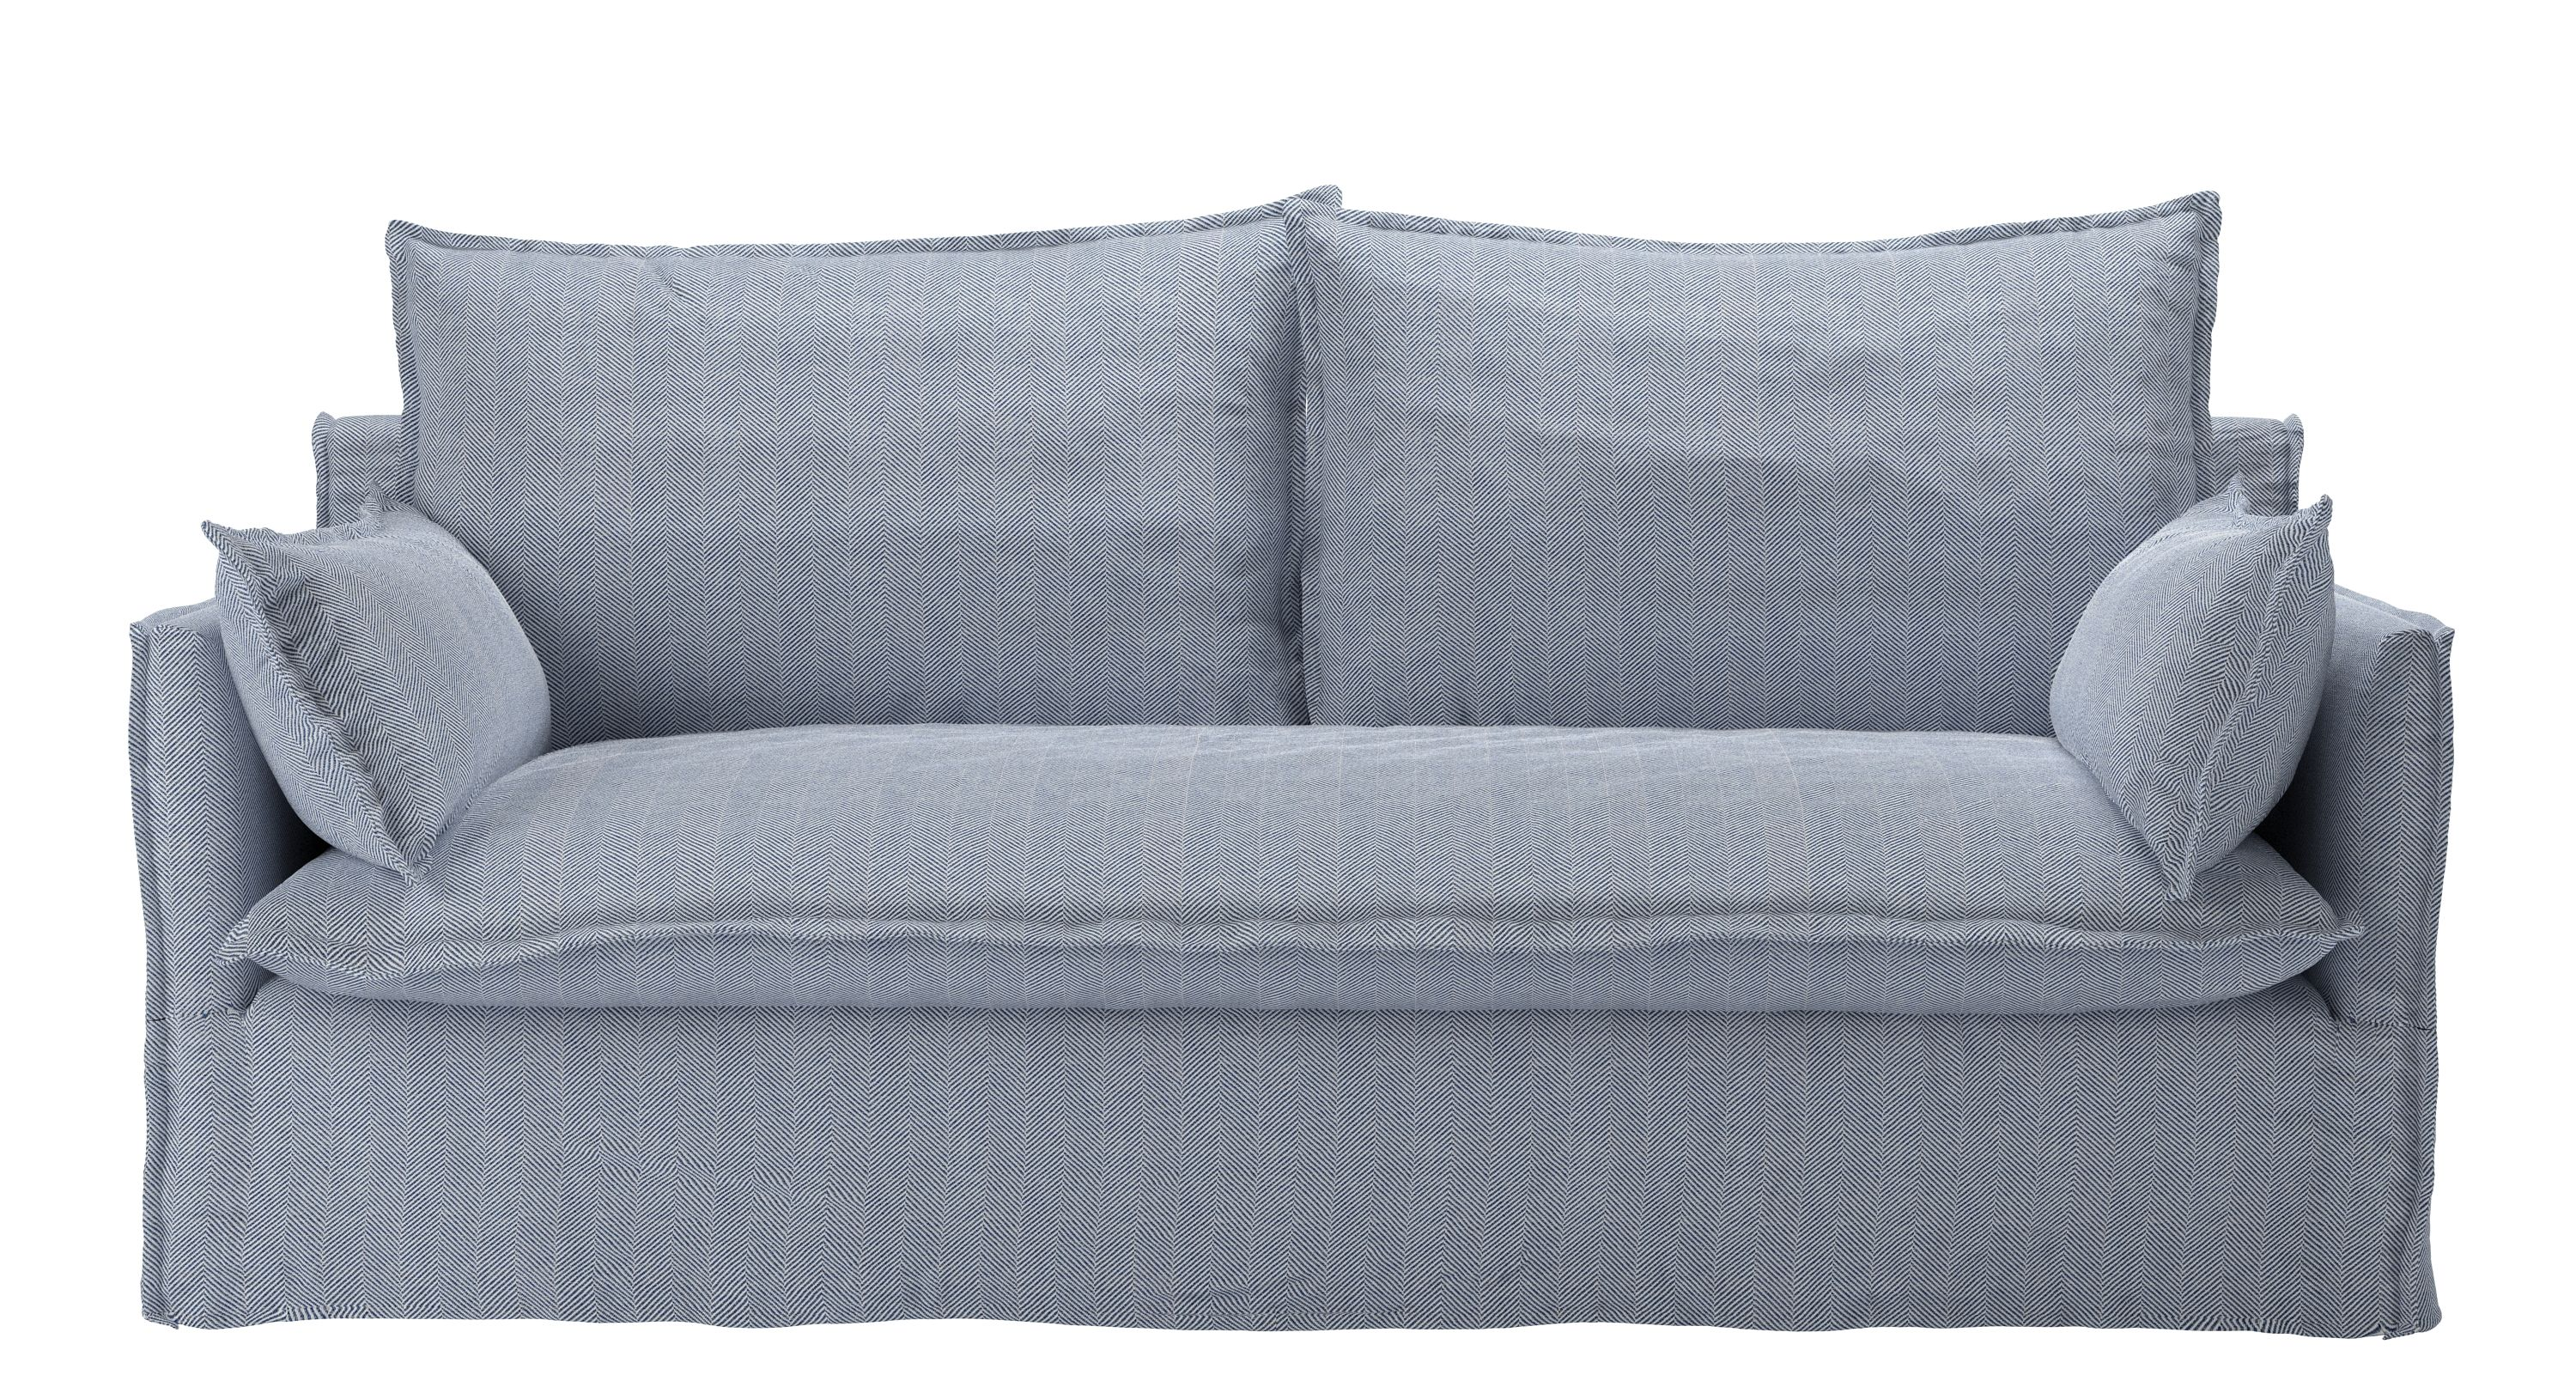 Isaac Three Seat Sofa In Uniform House Herringbone Weave Fabric Sofas Sofas Sofa Fabric Sofa Removable Cover